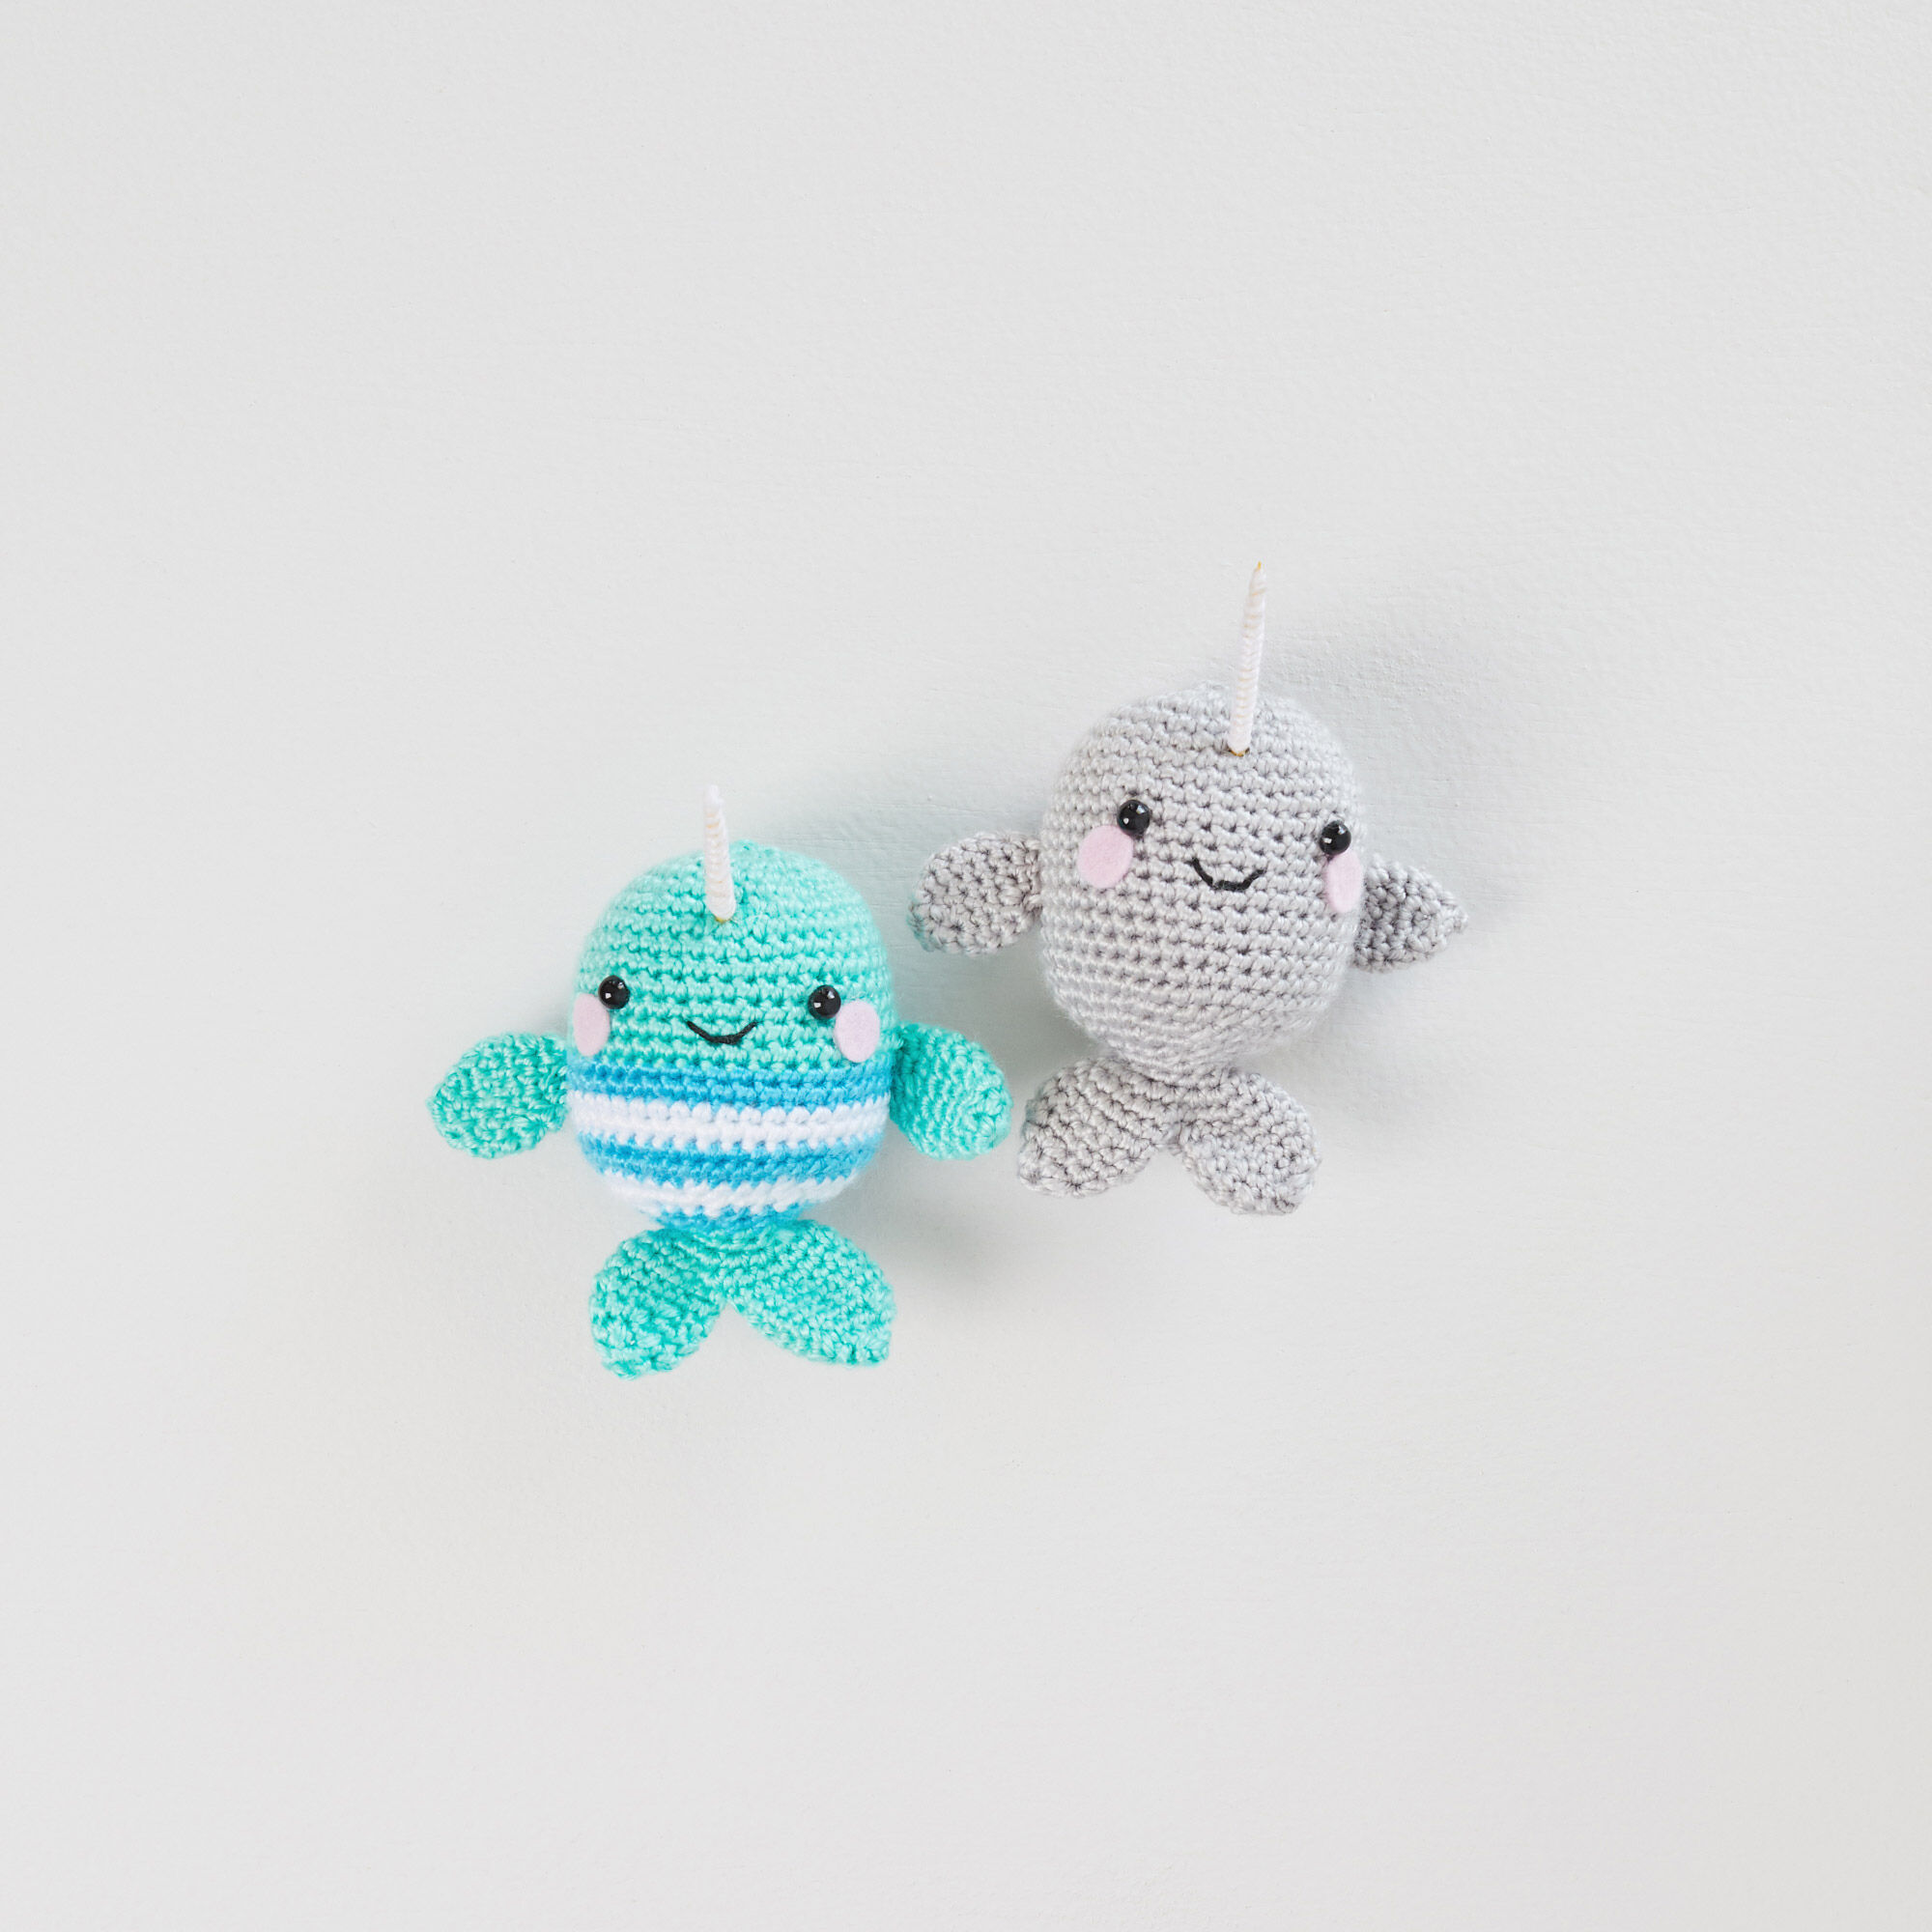 Red Heart Amigurumi Happiness Look Book by Red Heart Yarns - issuu | 2000x2000